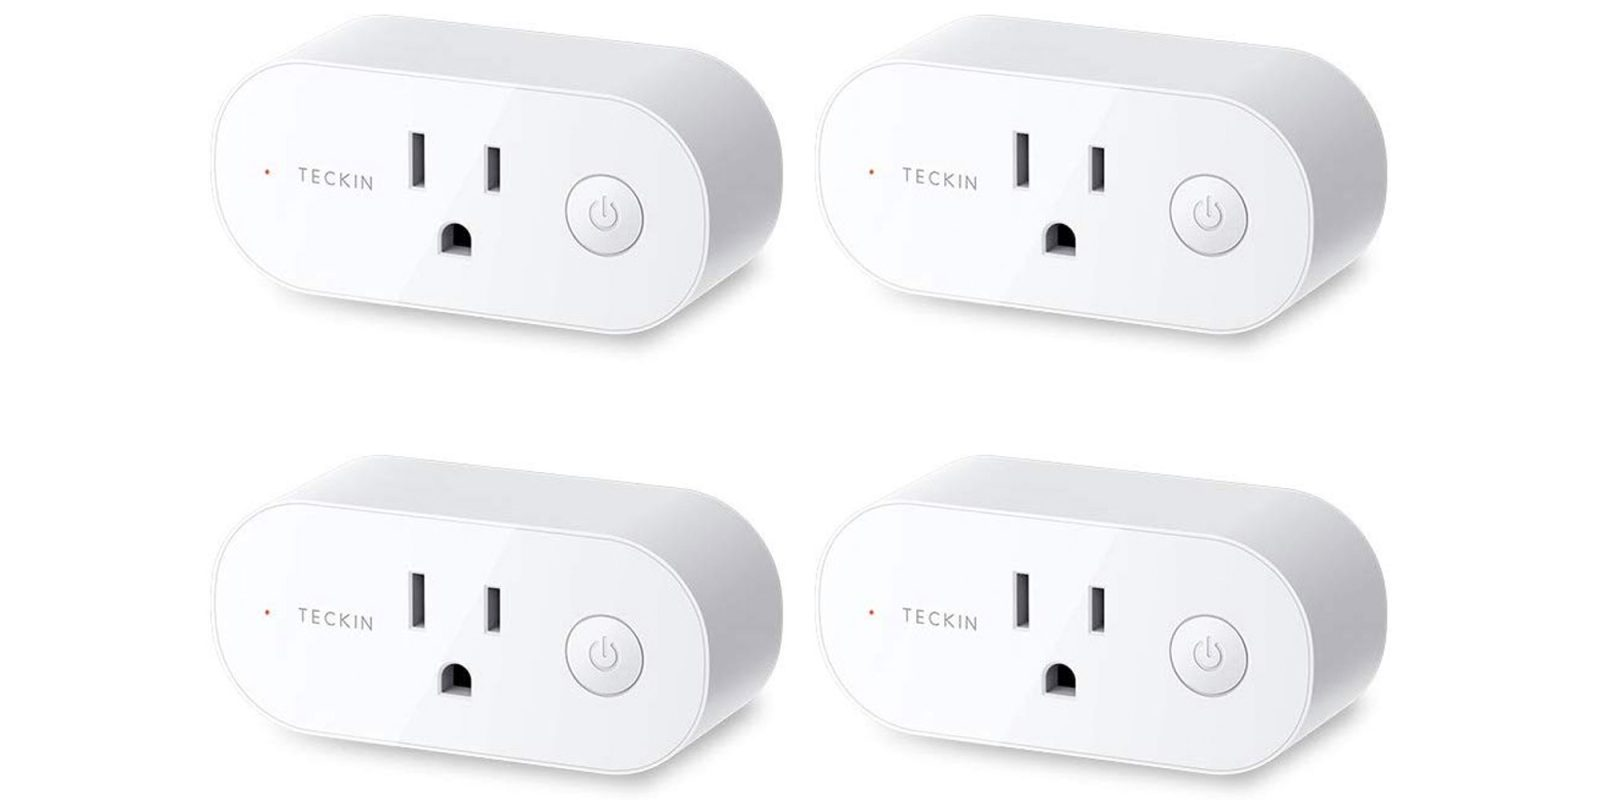 Save 35% on this four-pack of Alexa/Assistant Wi-Fi smart plugs, now $26